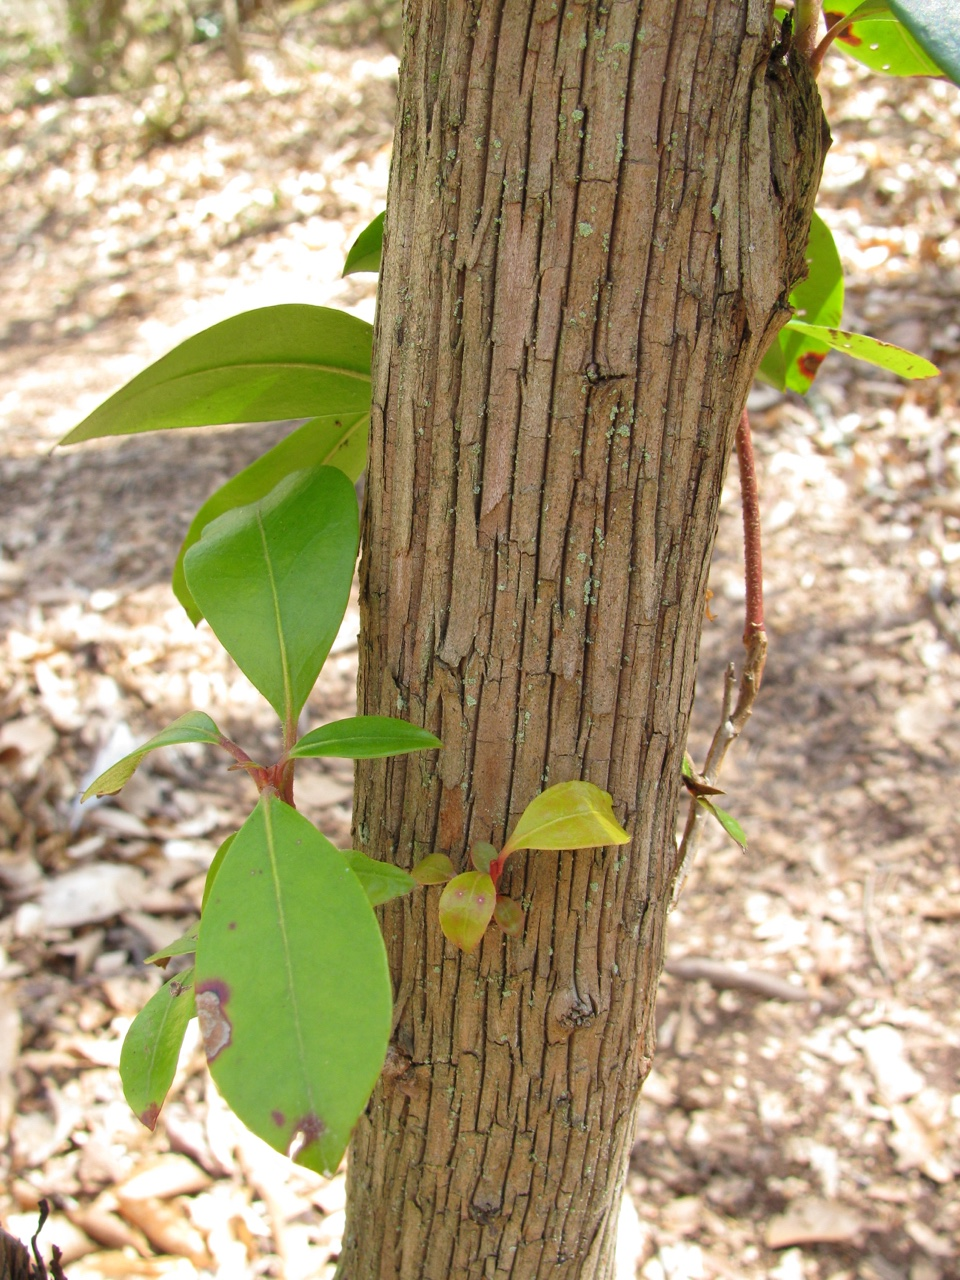 The Scientific Name is Kalmia latifolia. You will likely hear them called Mountain Laurel, Ivy, Calico-bush. This picture shows the The bark is thin, lightly ridged and furrowed, often splitting and shedding. of Kalmia latifolia